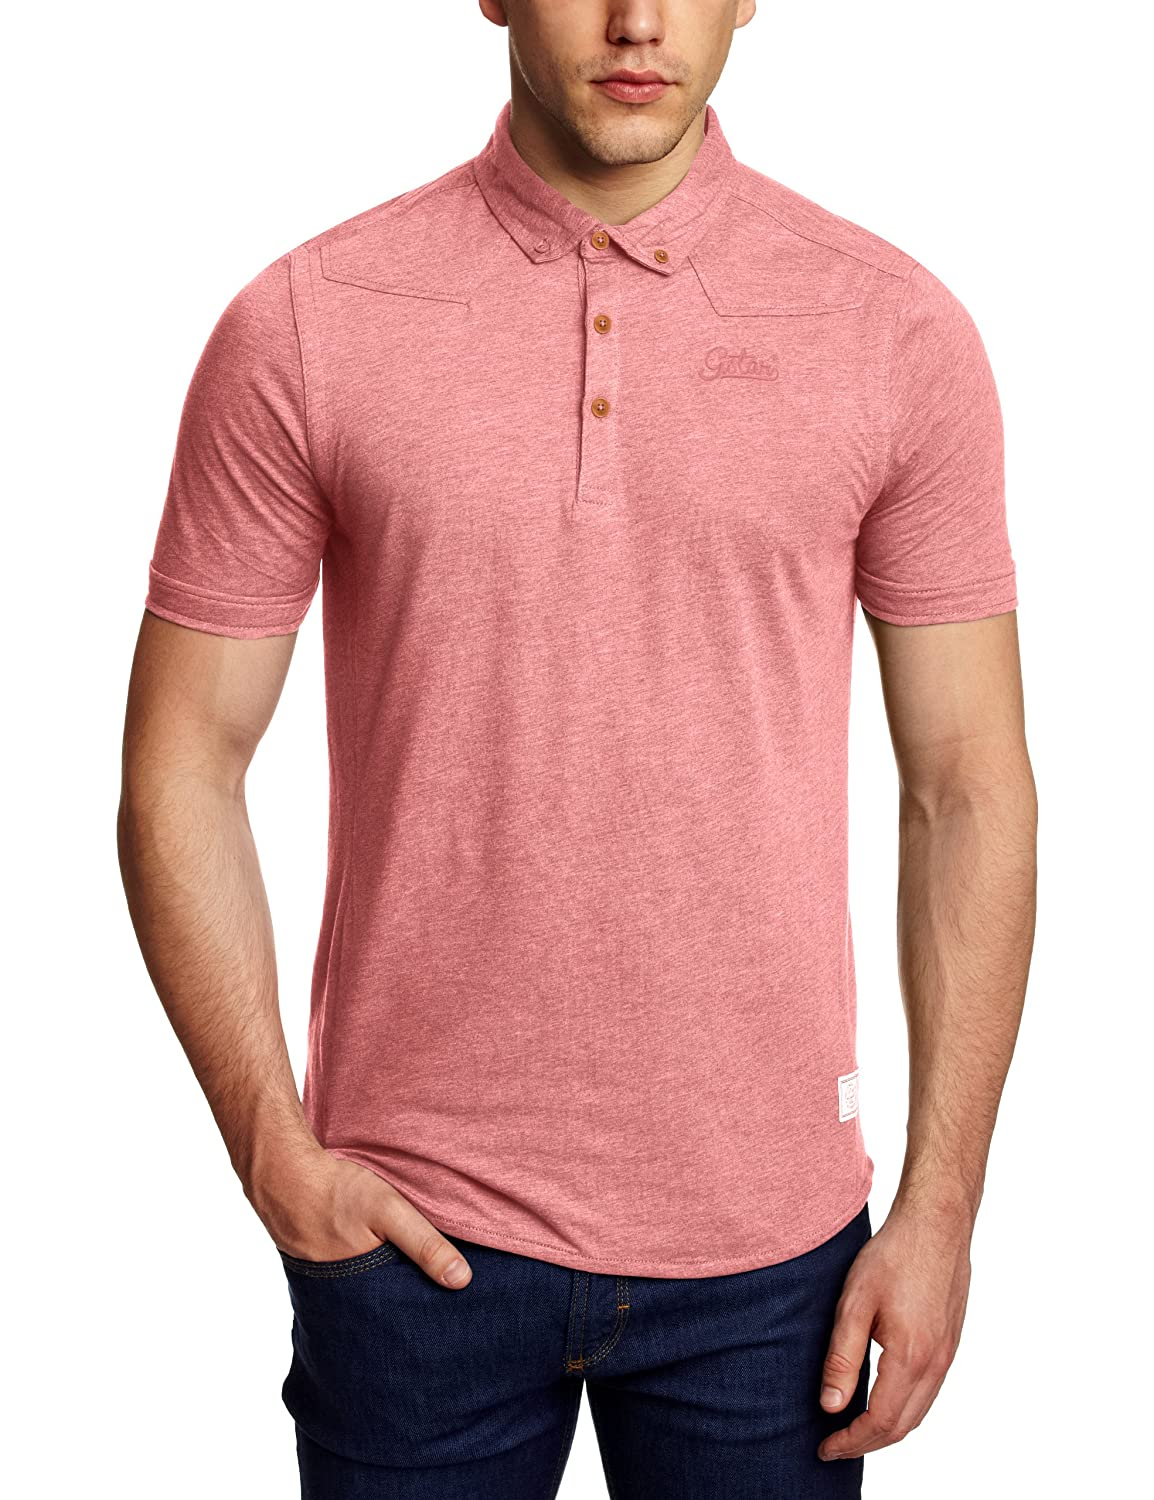 G-Star - Polo - Polo - Manga Corta - para Hombre Rosa Dusty Rose ...